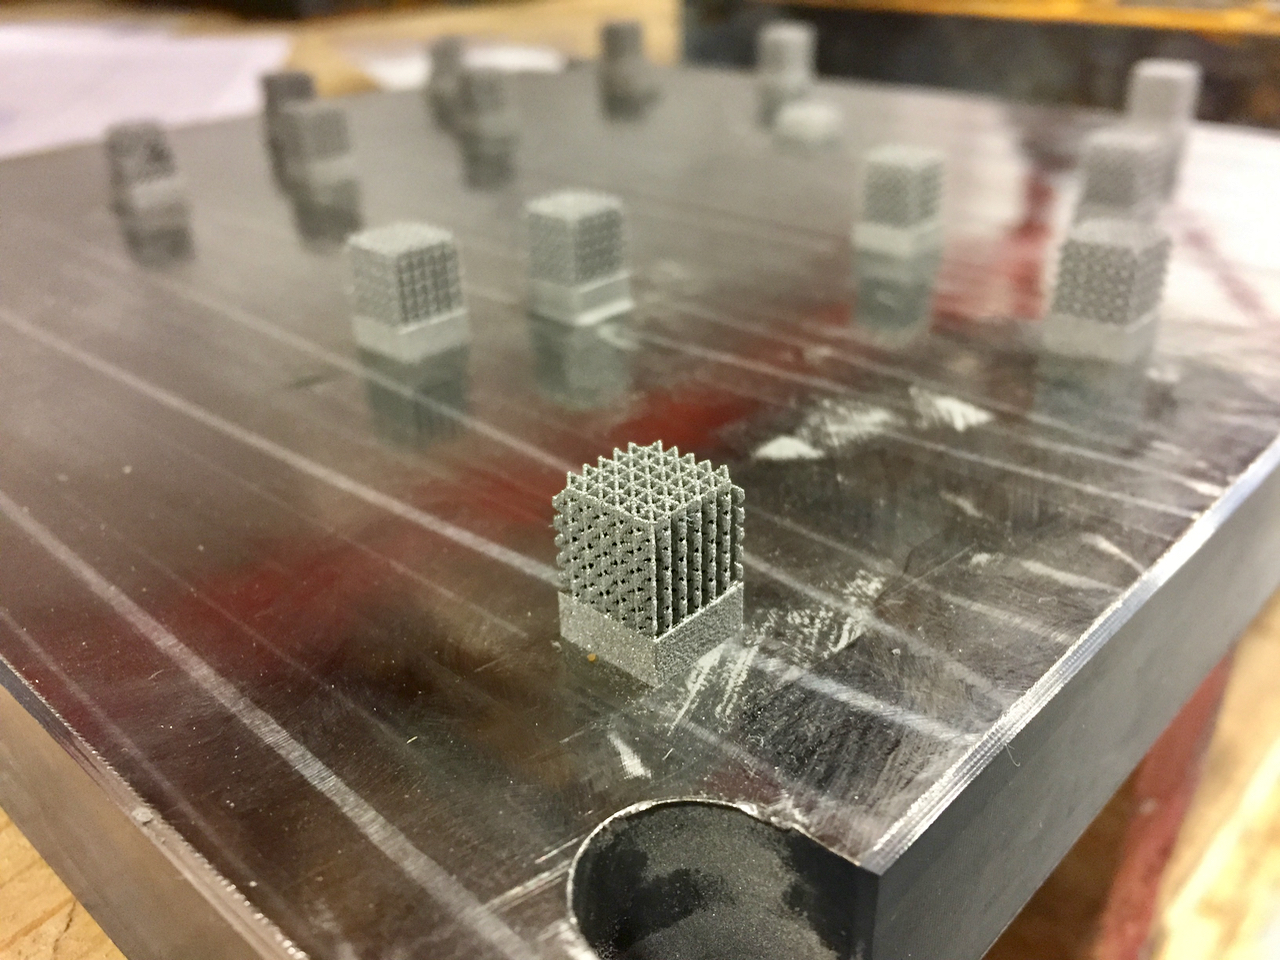 3D print test cubes made by Precision ADM to experiment with different print profiles